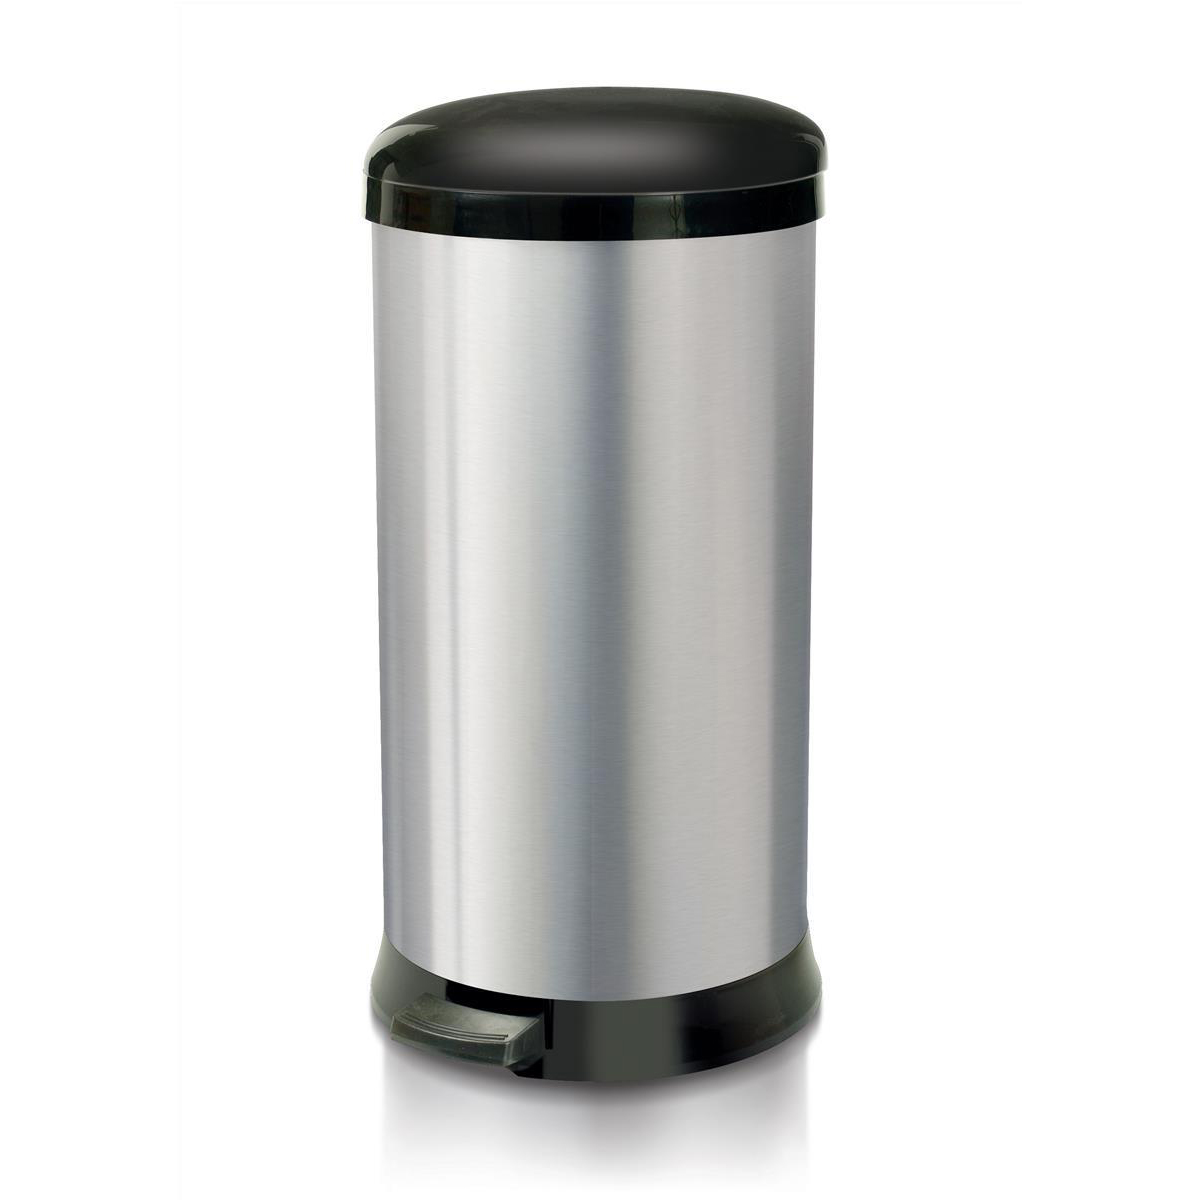 Rubbish Bins Addis Pedal Bin Cushion Close 30 Litre Stainless Steel Ref 518017